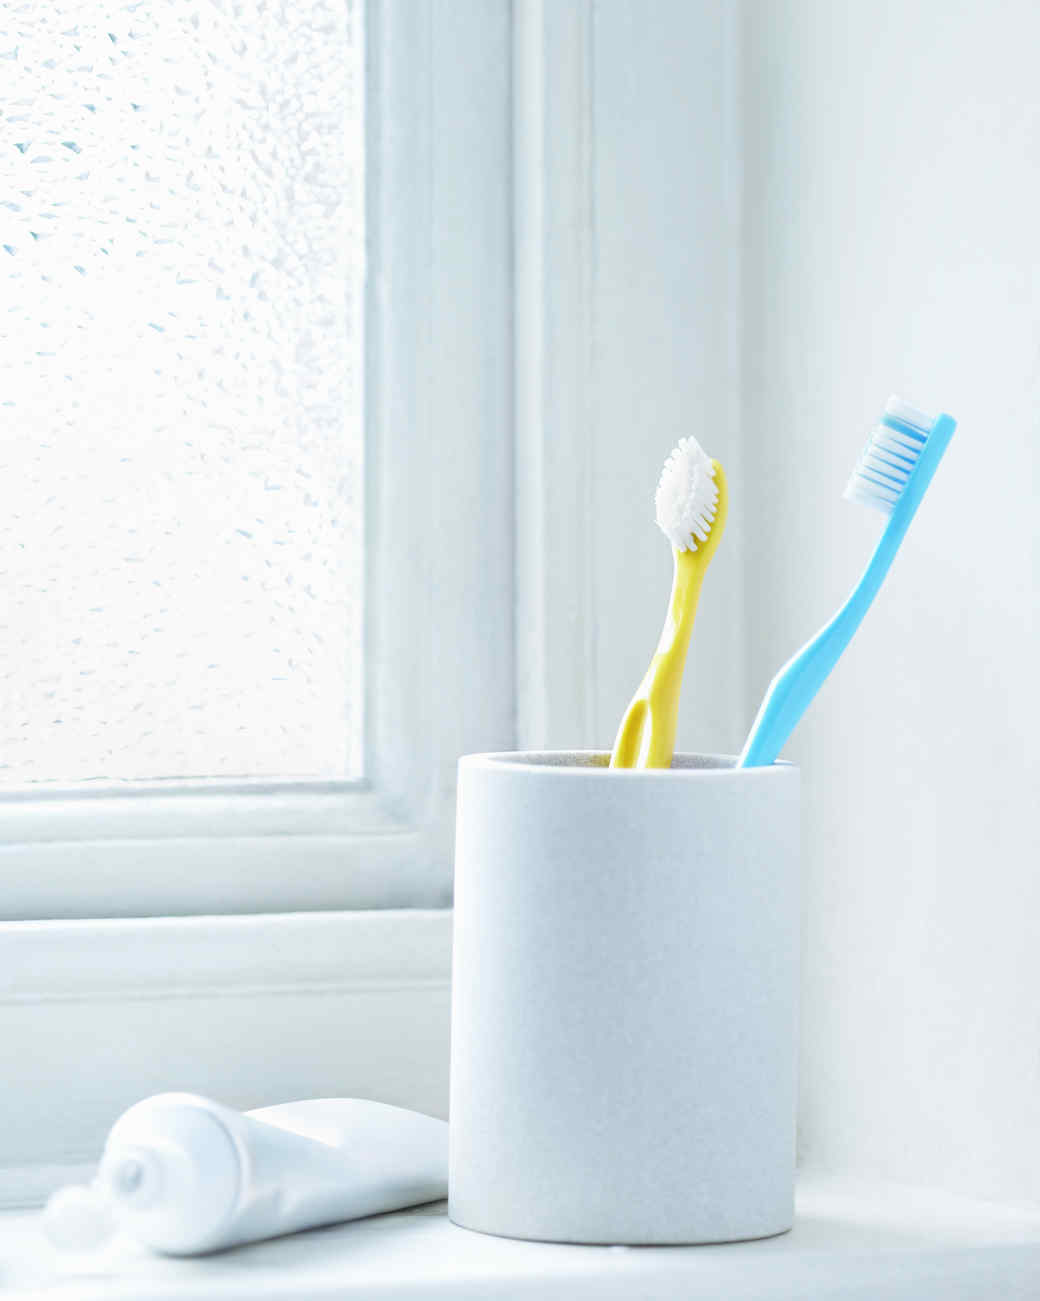 toothbrush-plastic-bathroom